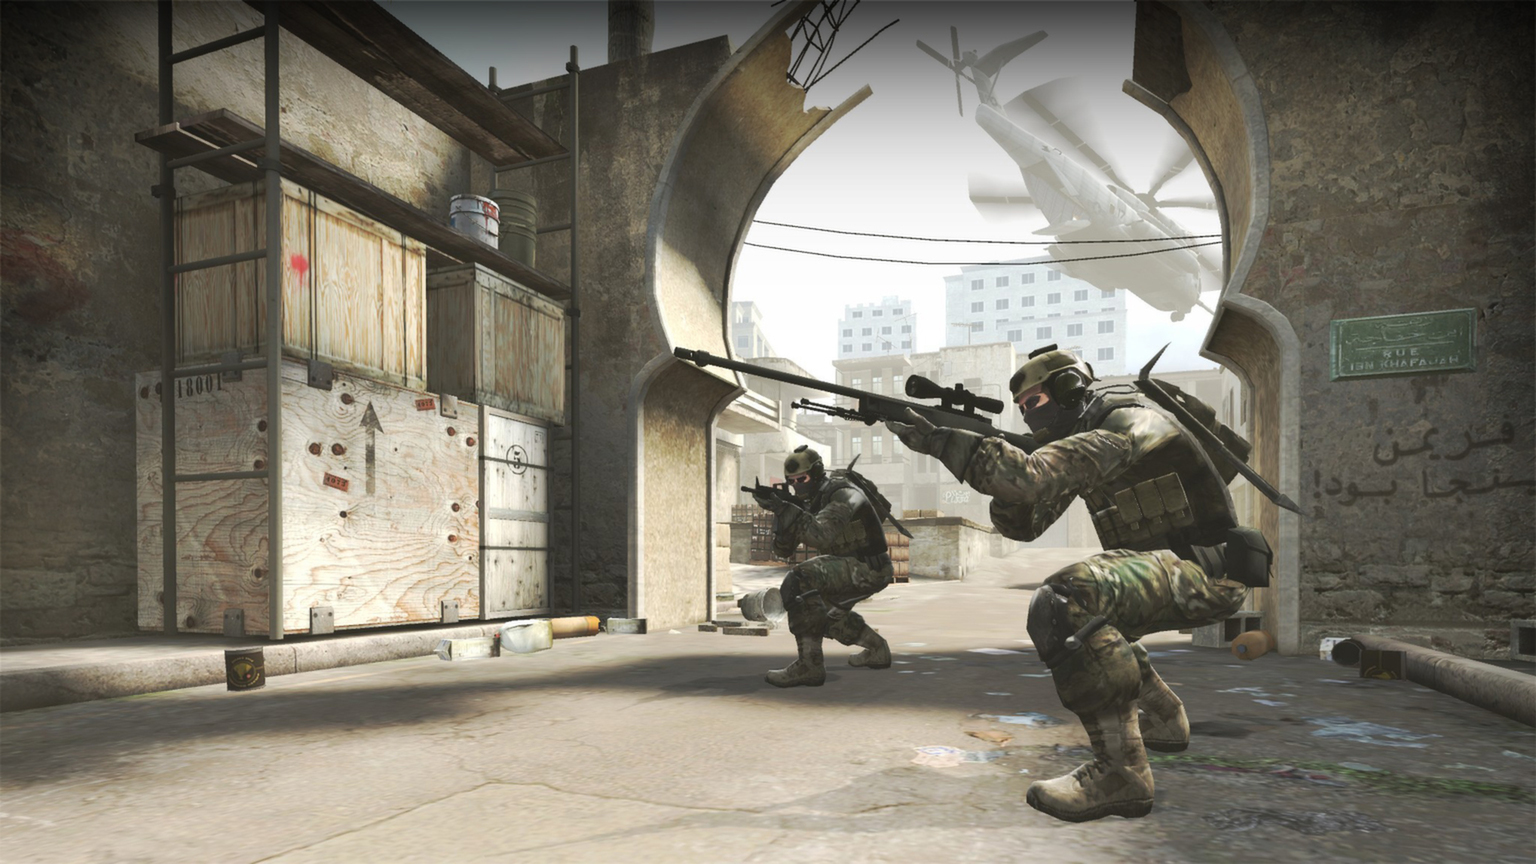 The best Counter-Strike yet